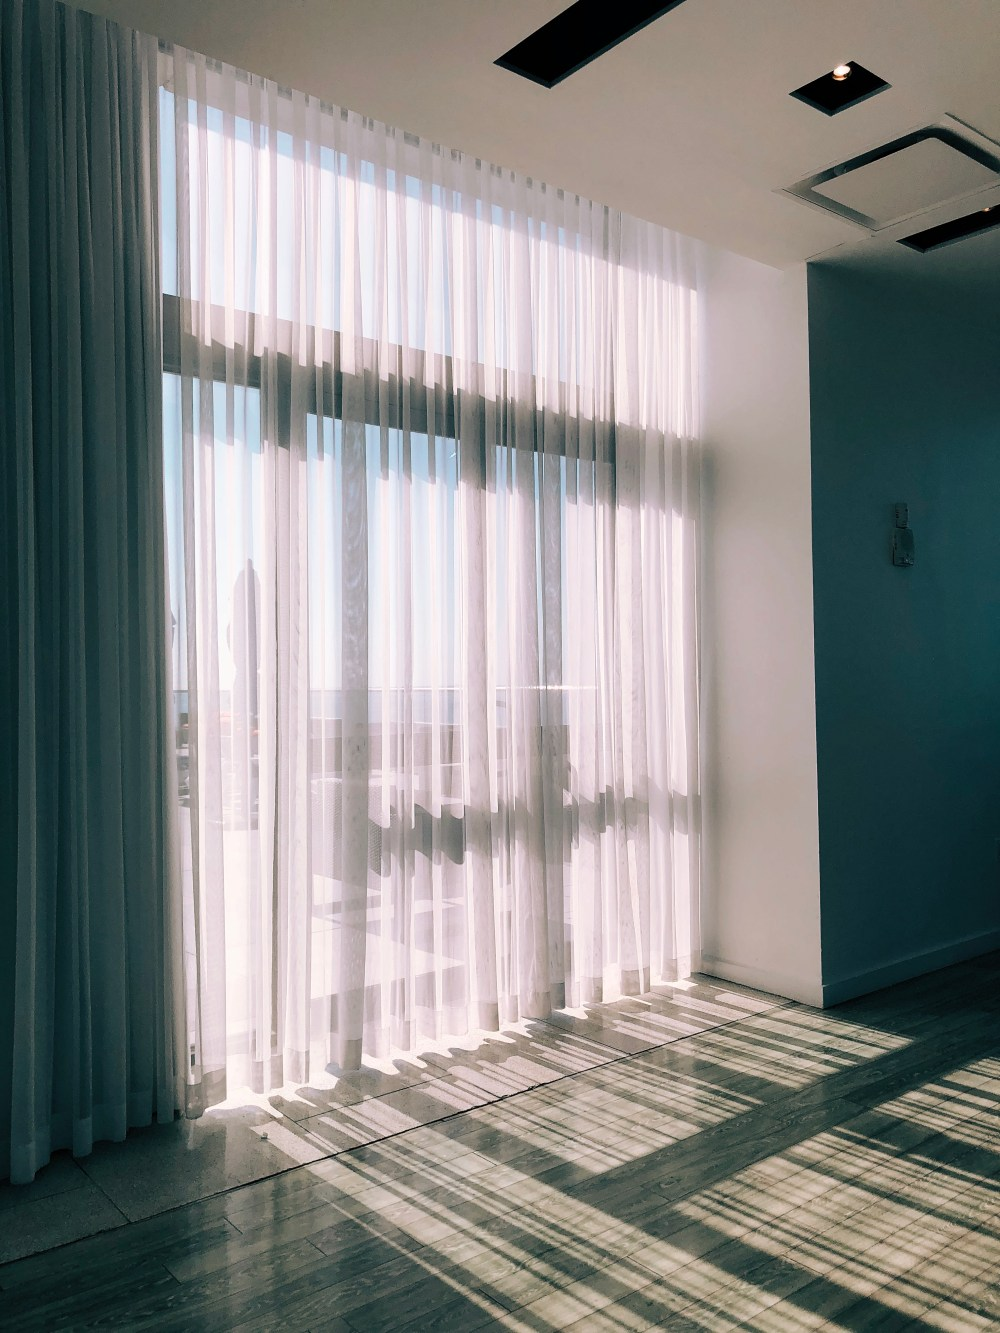 27 Curtain Pictures Download Free Images On Unsplash